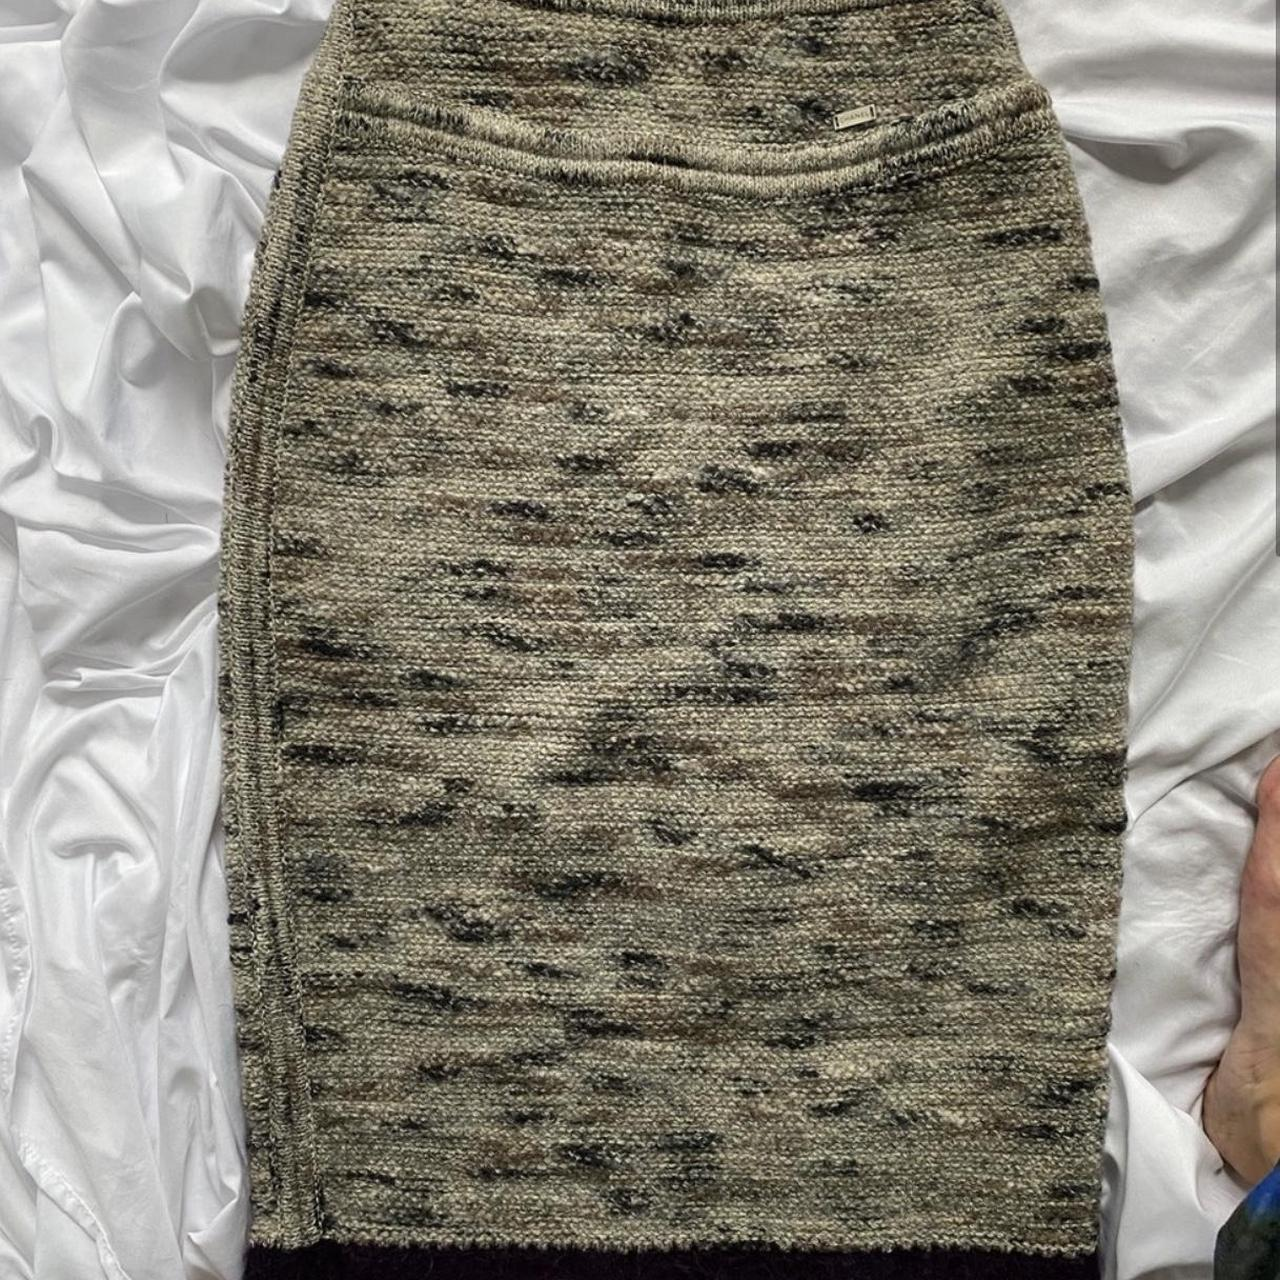 Product Image 1 - Authentic Vintage 1990s Chanel Wool